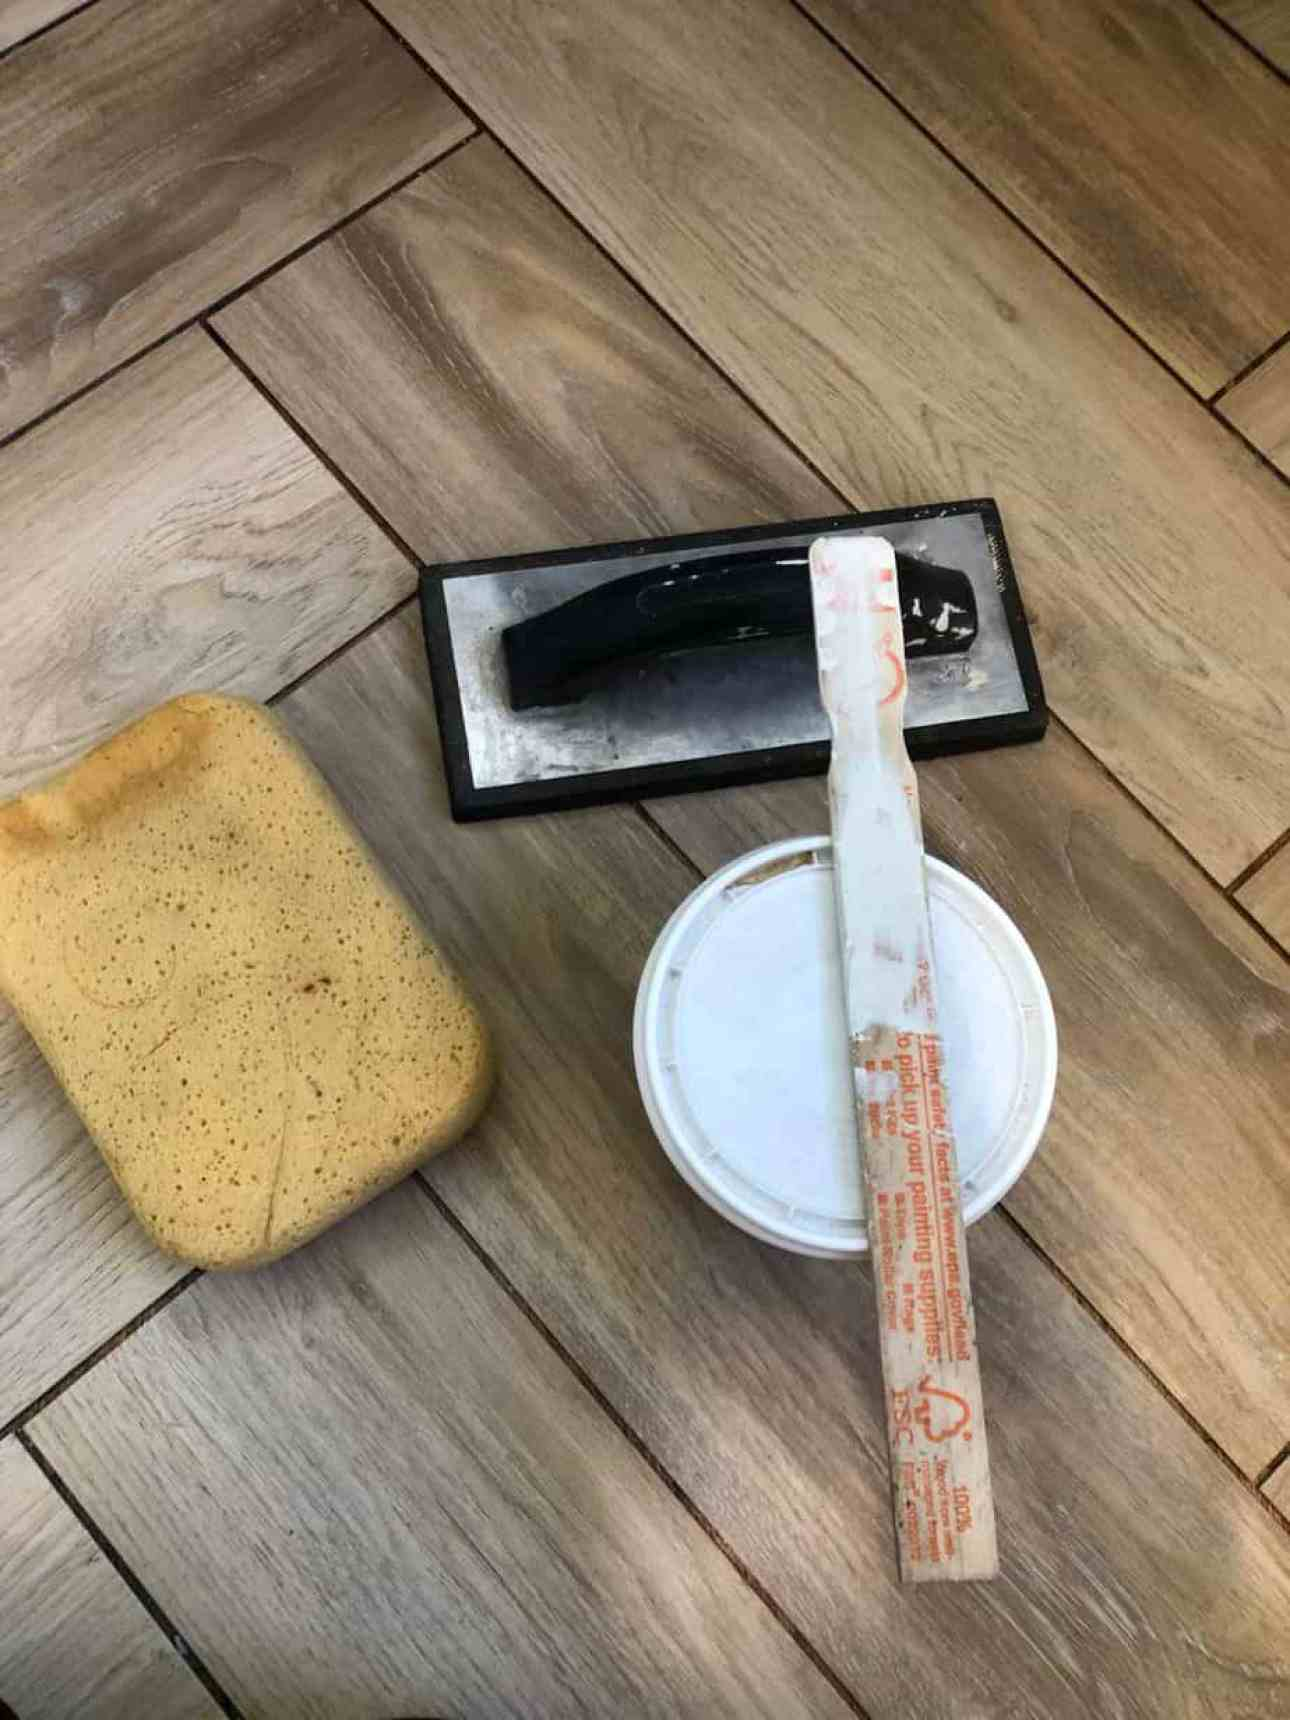 Grout tool and sponge.